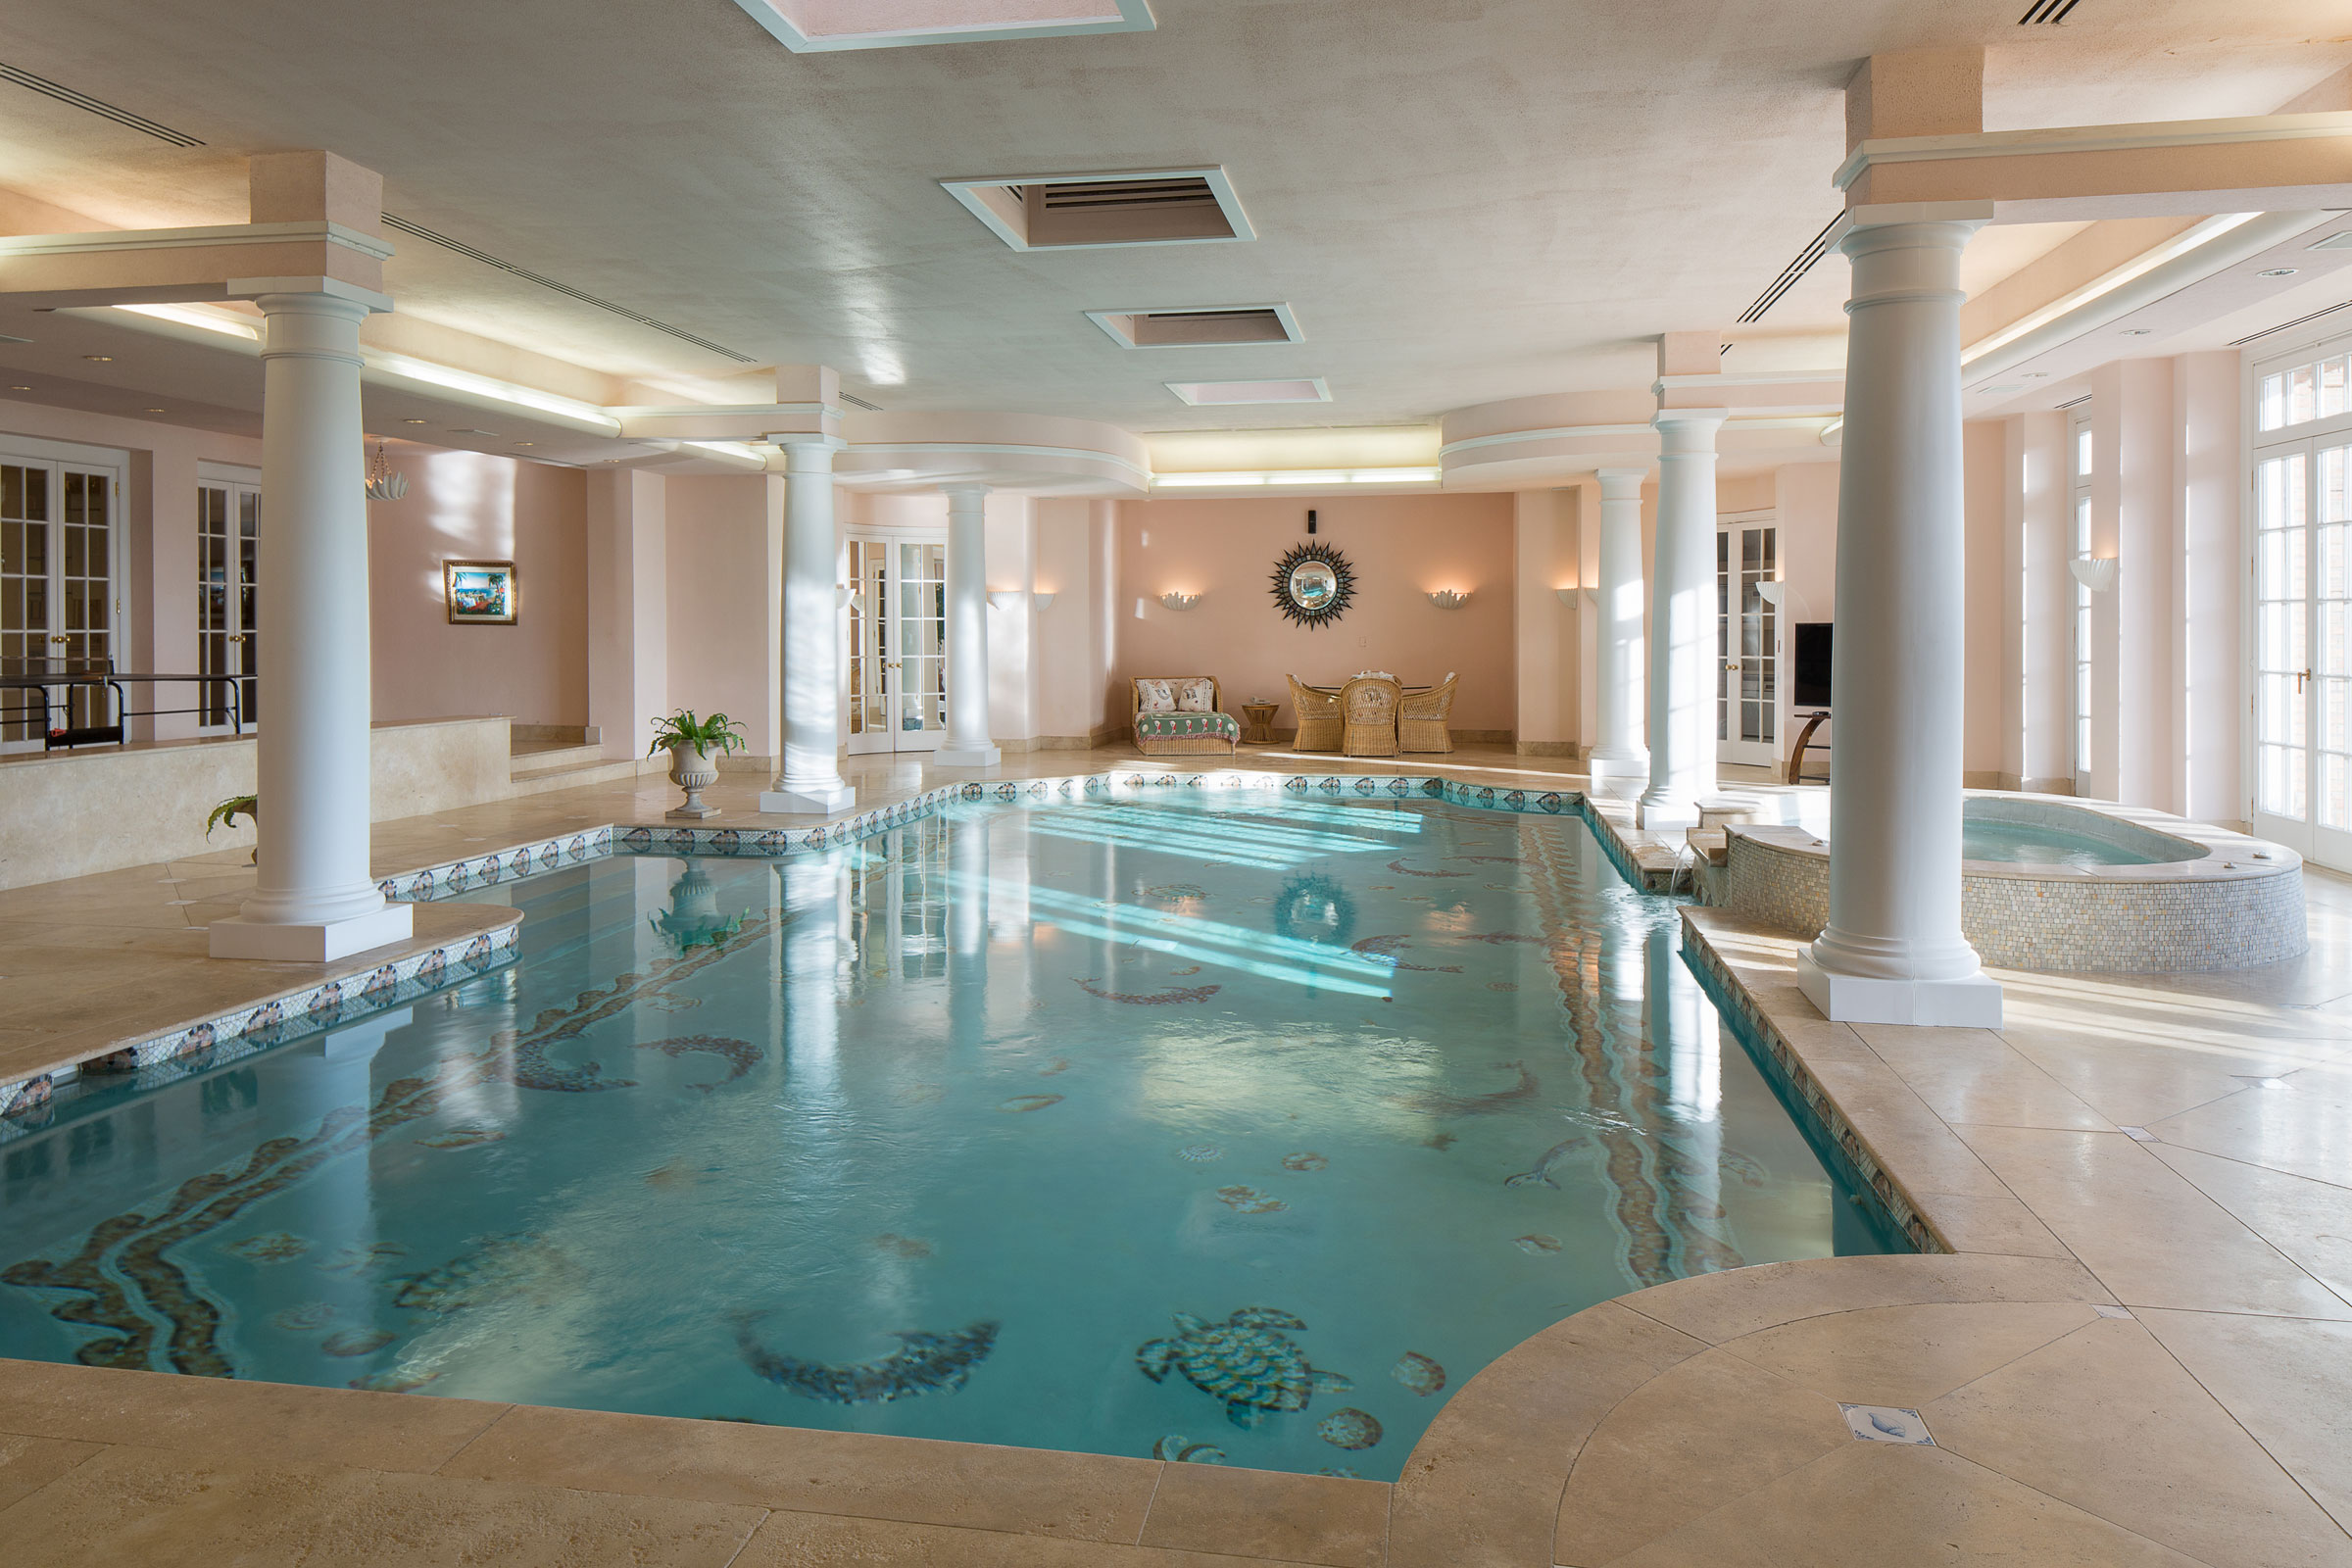 At The Centre Of The Estate, A Georgian Style Manor Features An Indoor,  Mosaic Tiled Swimming Pool, With A Seating ...